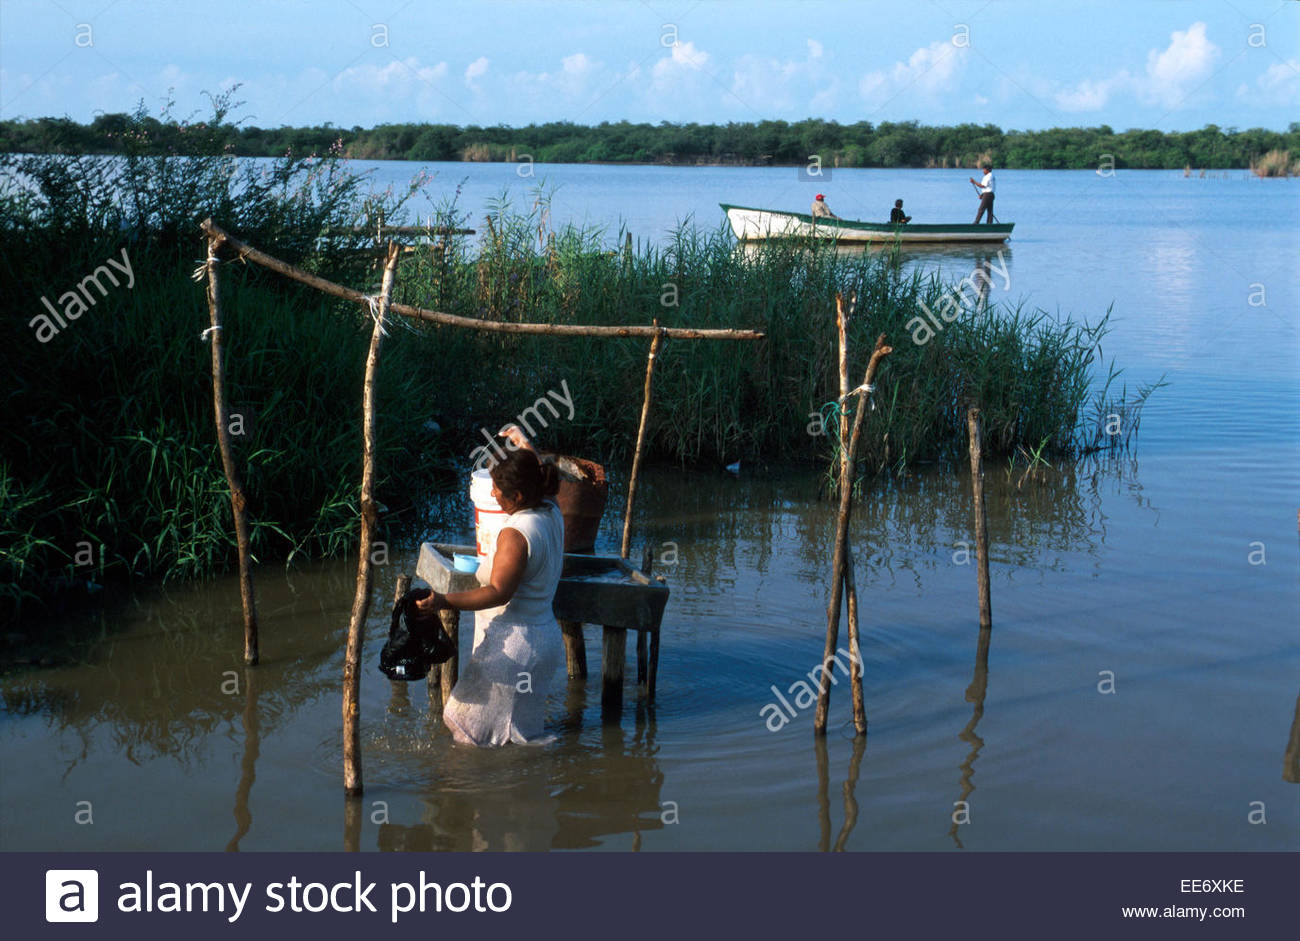 Mexcaltitan, Clothes washing in the lagoon - Stock Image